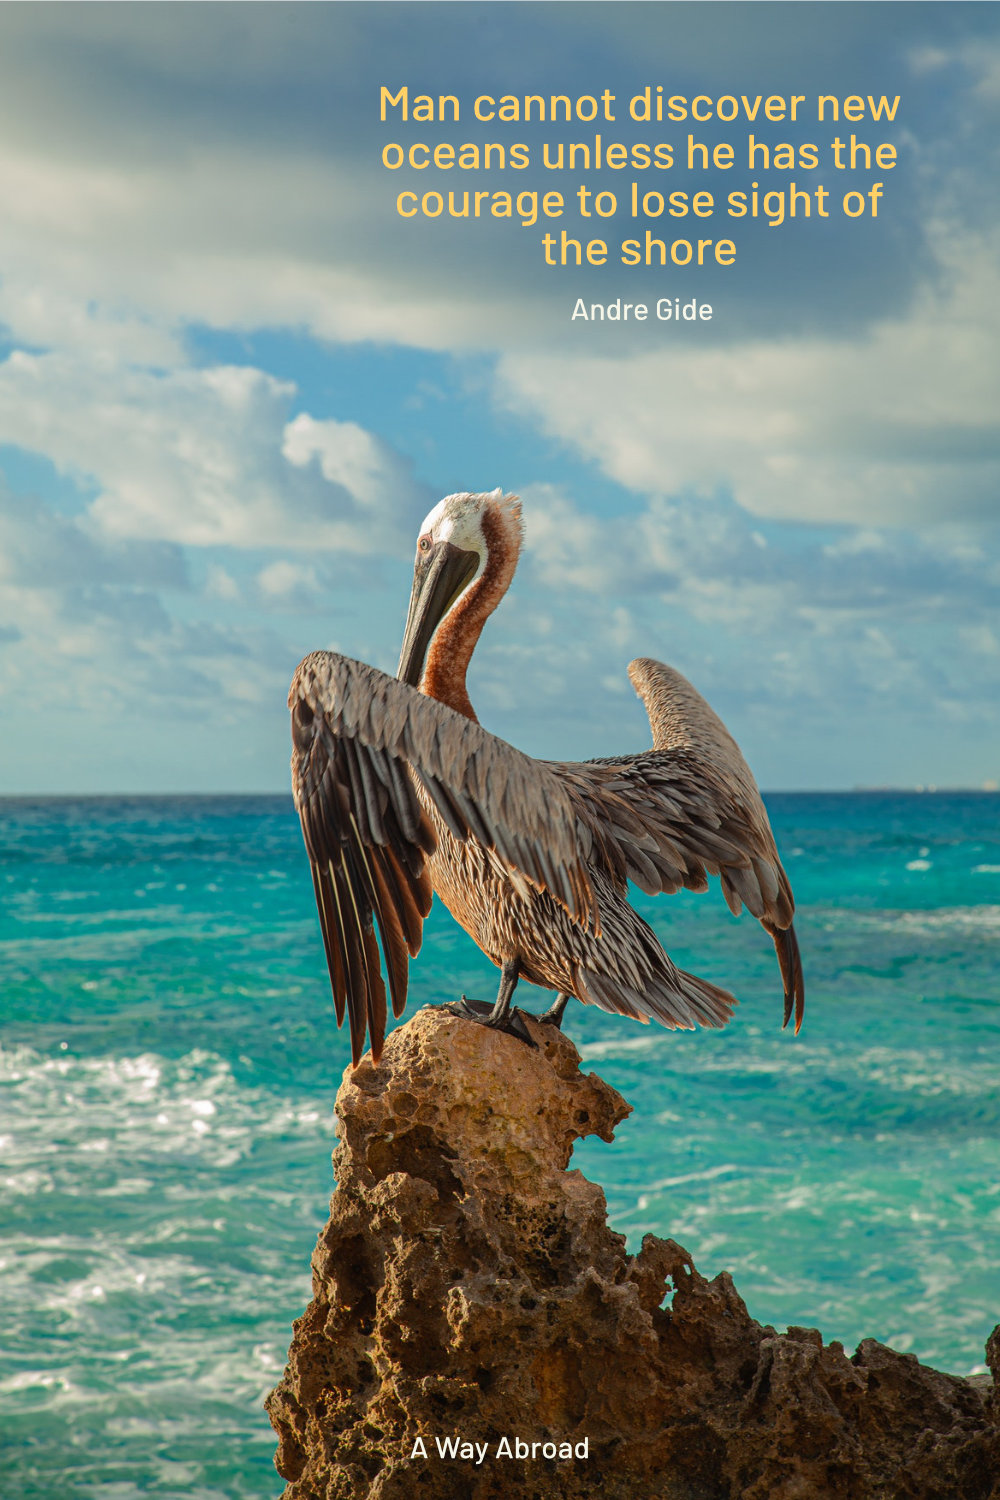 a pelican sitting on a rock overlooking the ocean